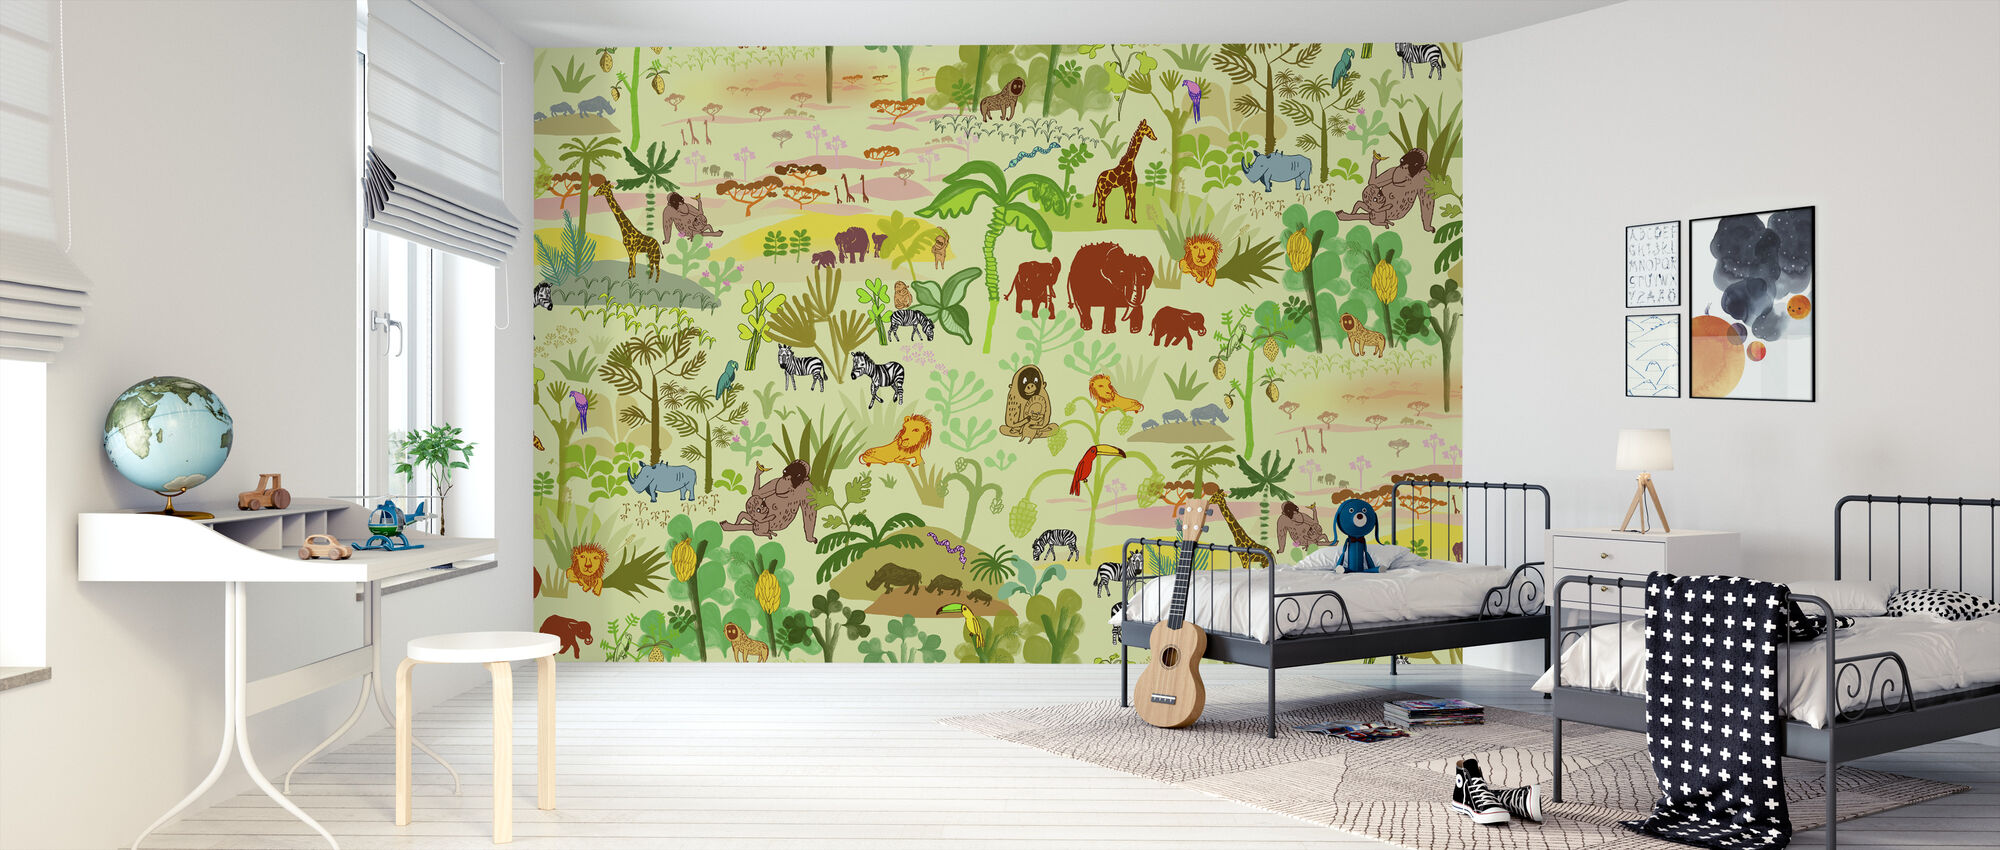 Serengeti patroon - Behang - Kinderkamer